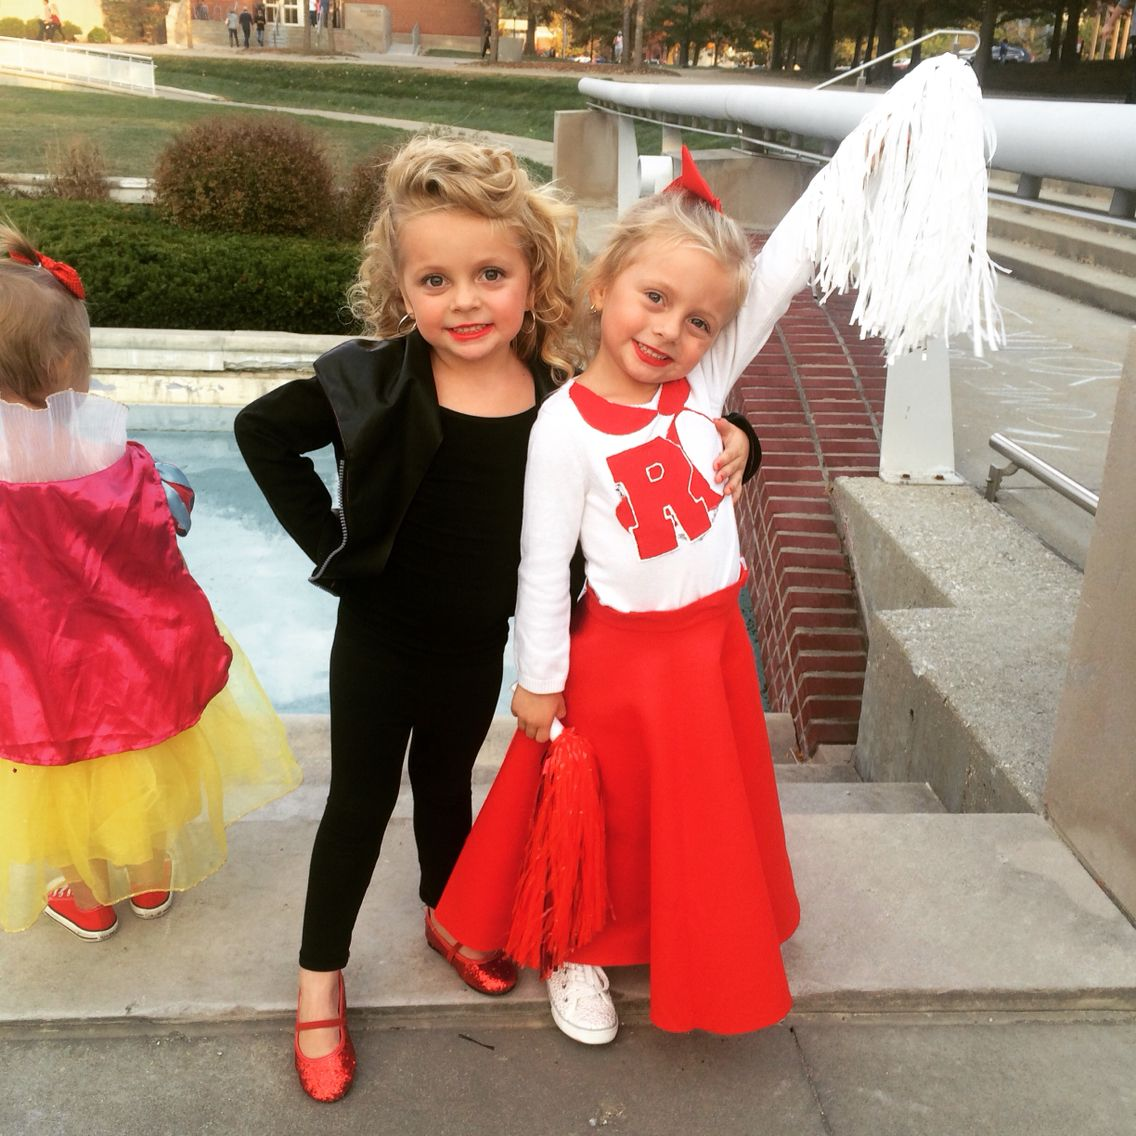 boy and girl twin costumes - Google Search | Costumes | Pinterest ...